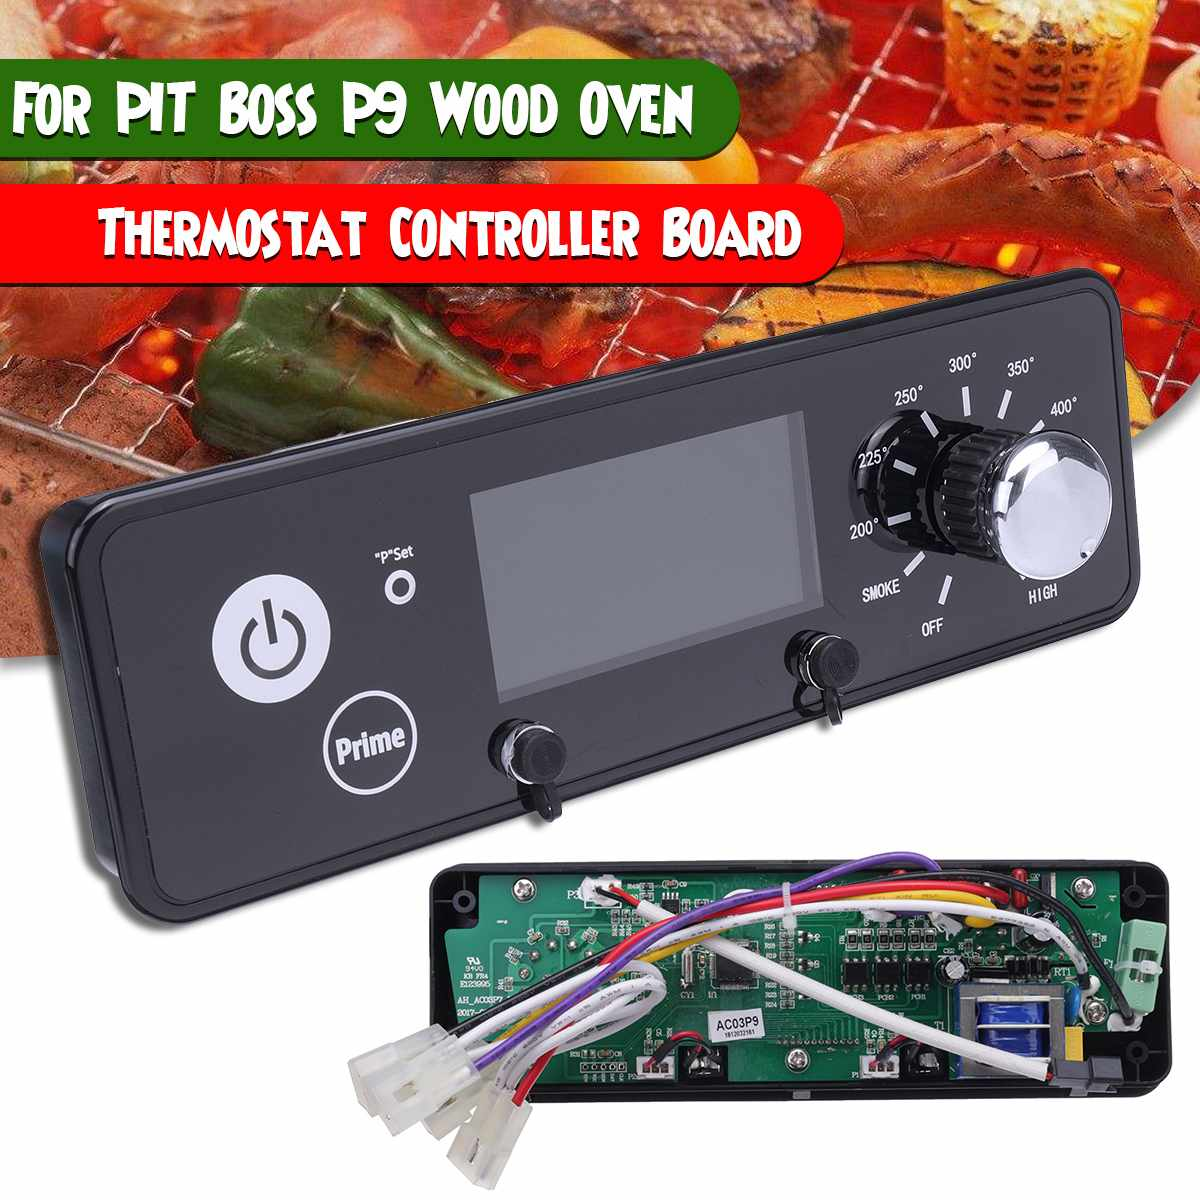 AC120V P9 Thermostat Controller Board W/LCD Display For PIT Boss P9 Wood Oven BBQ Barbecue Stove Tools